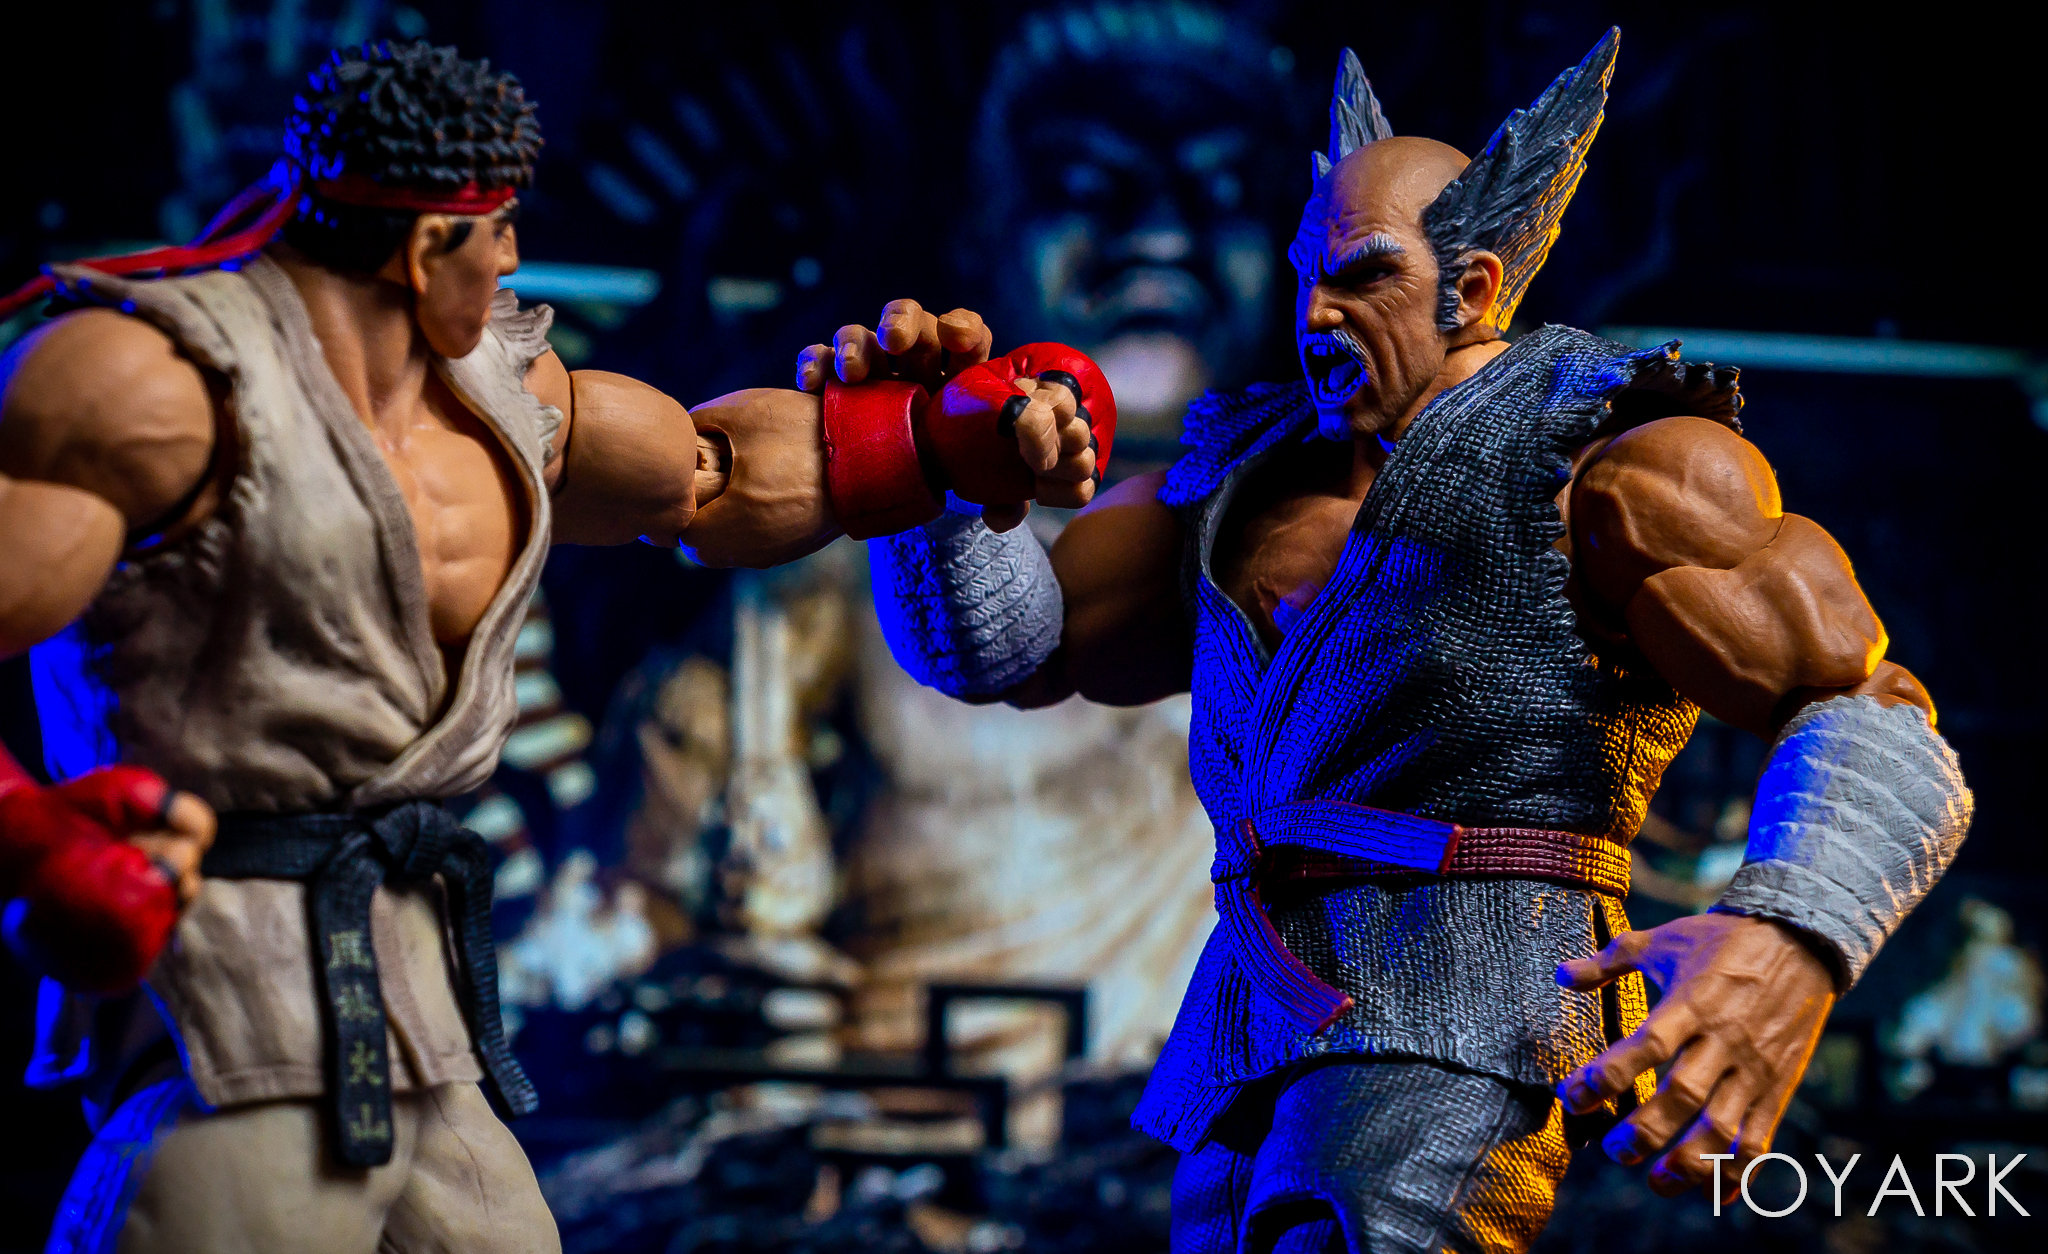 https://news.toyark.com/wp-content/uploads/sites/4/2018/05/Storm-Heihachi-Figure-040.jpg